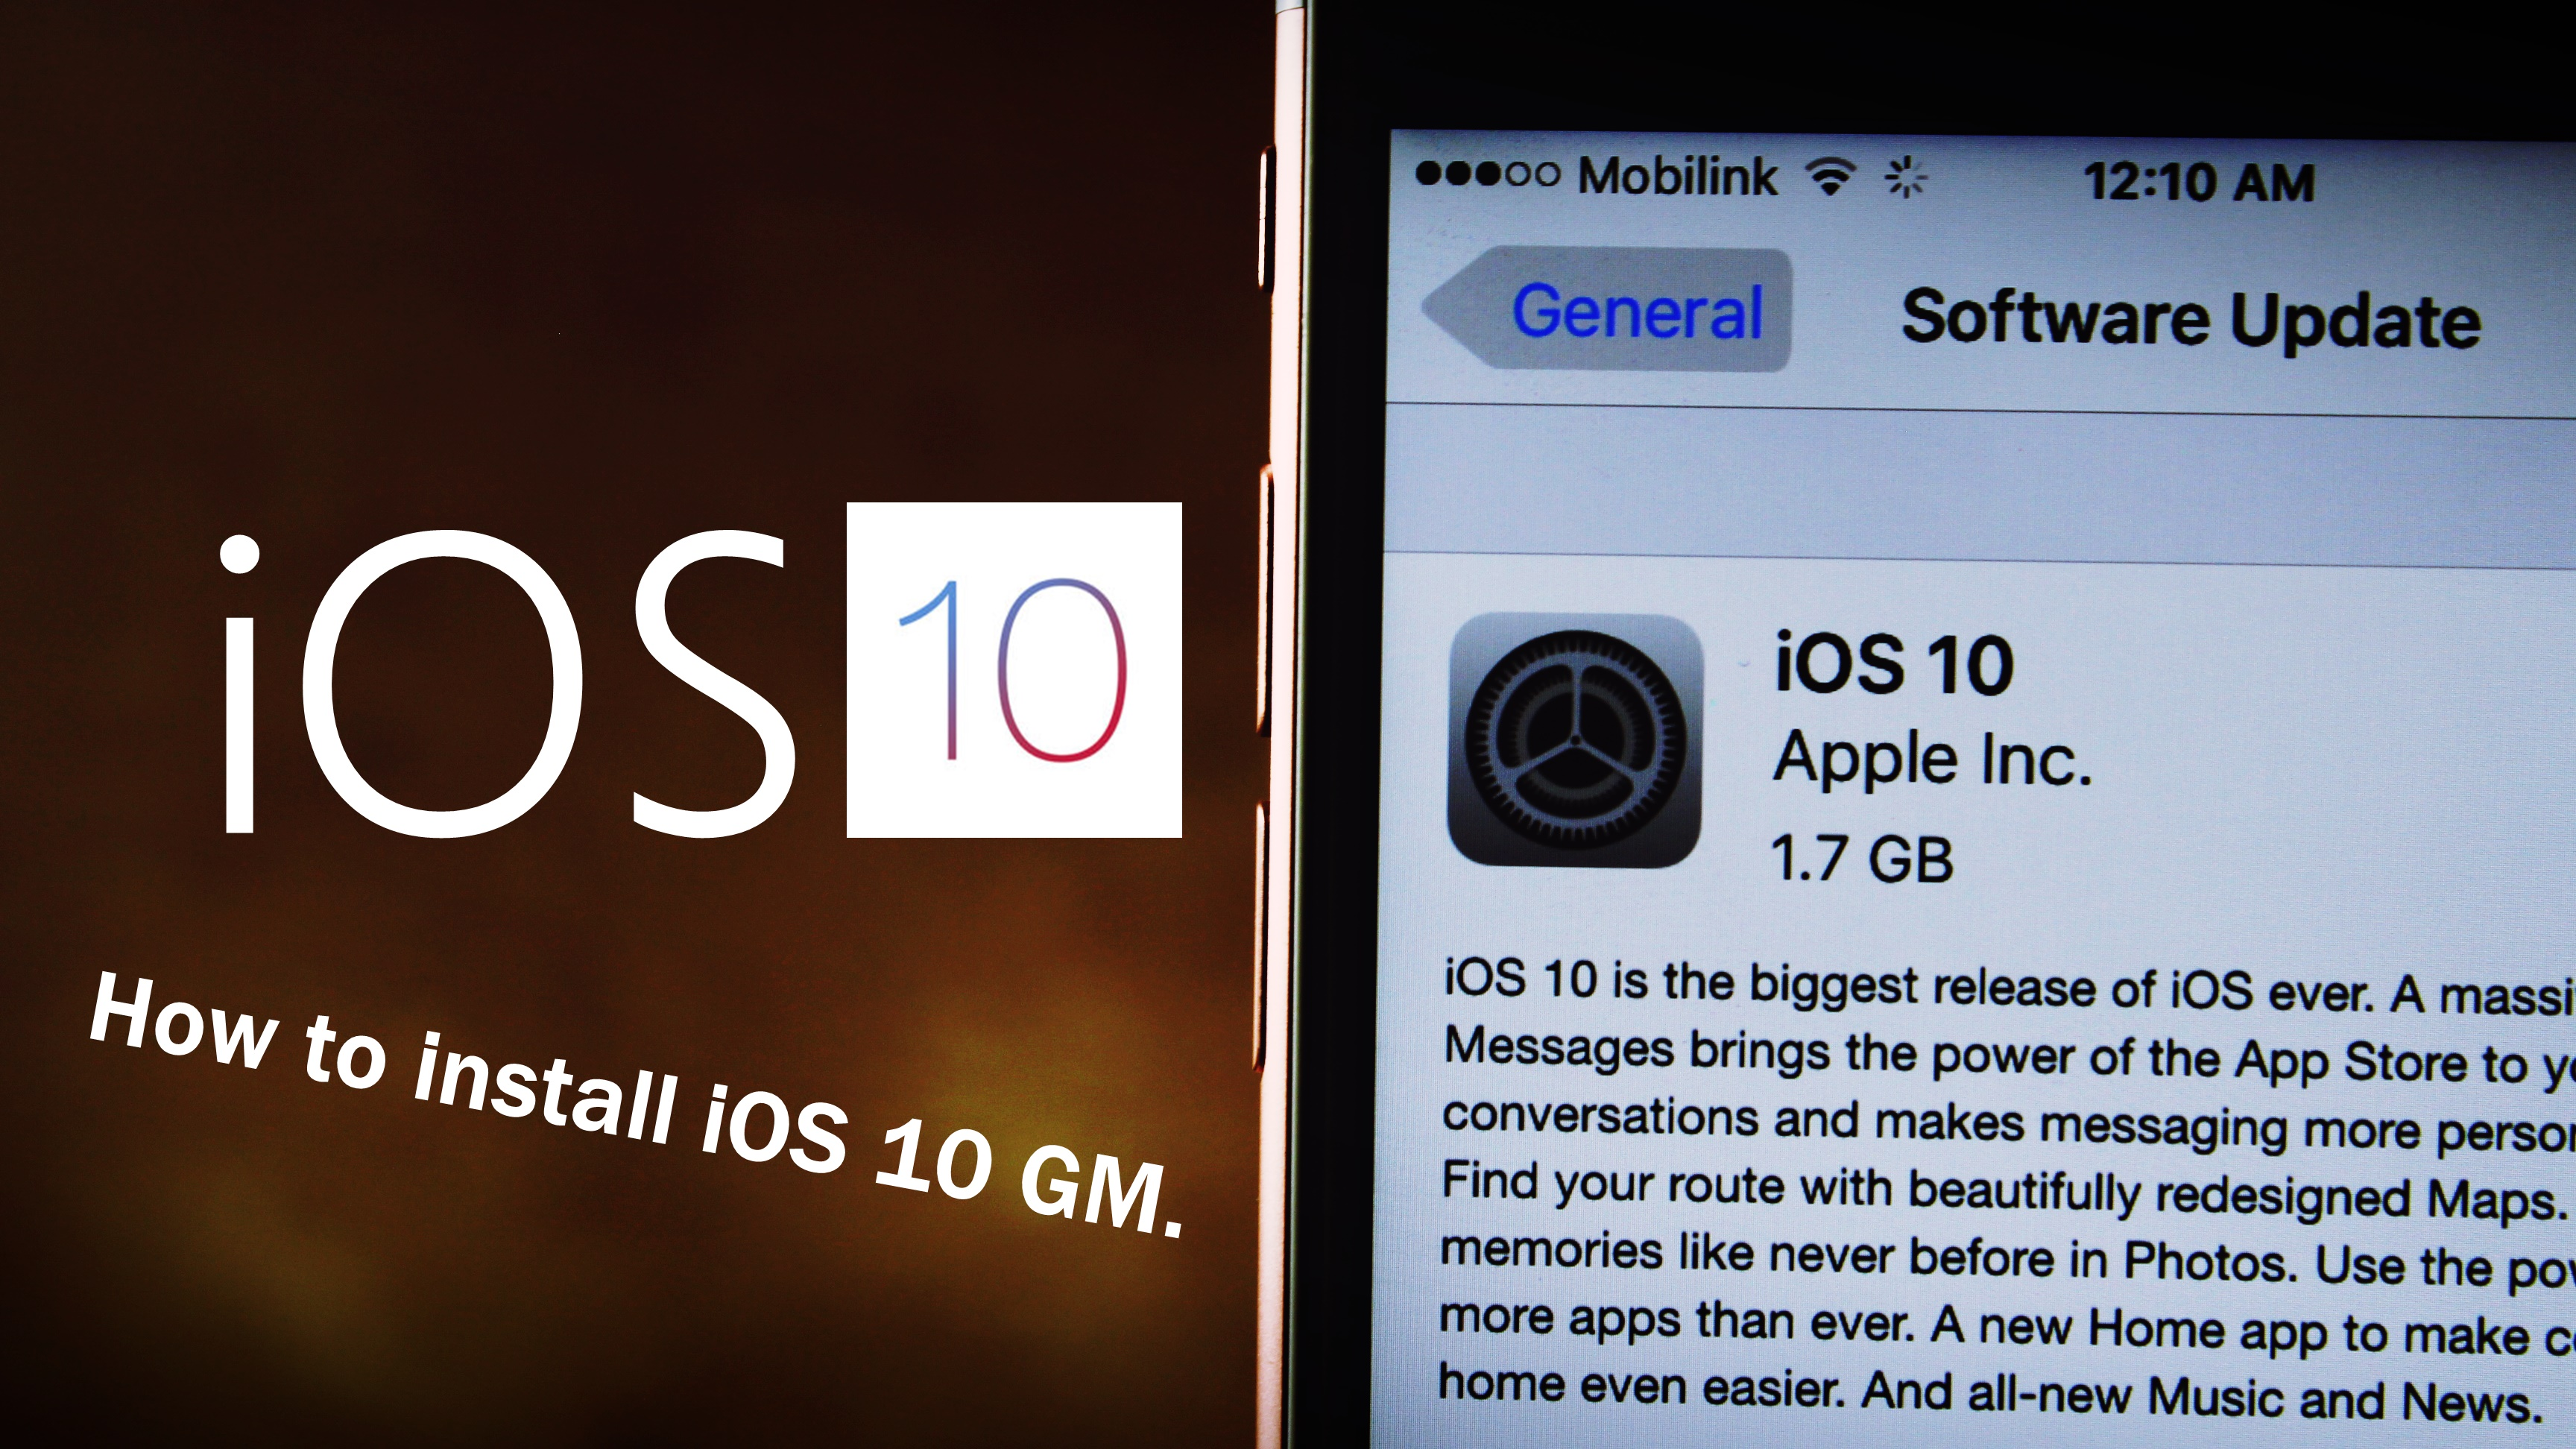 How to install iOS 10 GM on iPhone or iPad | Update your device to iOS 10.0.1 - Features